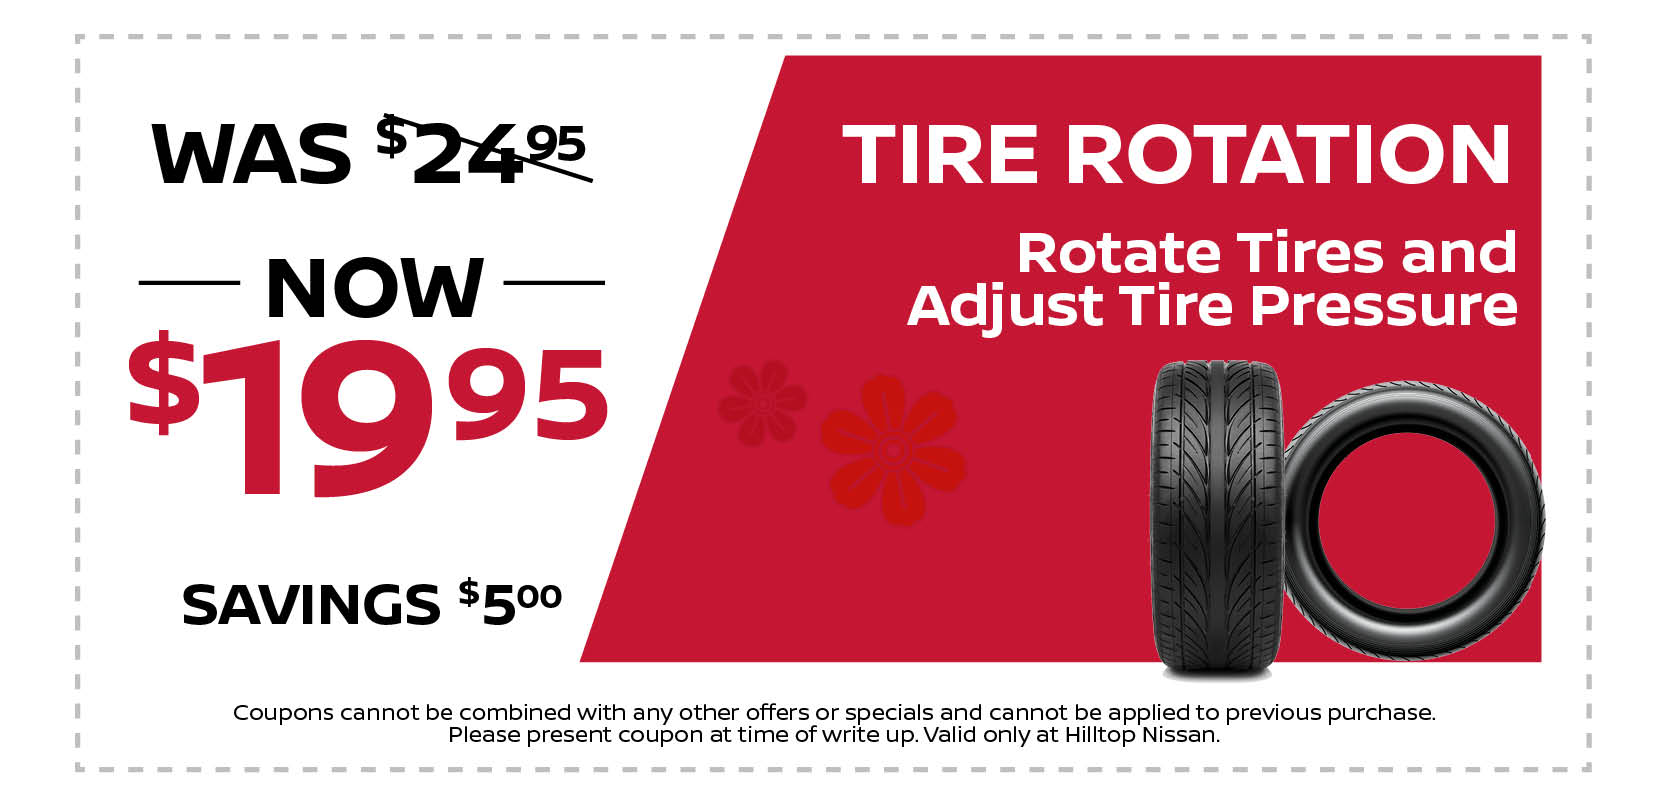 TIRE ROTATION, NOW $19.95